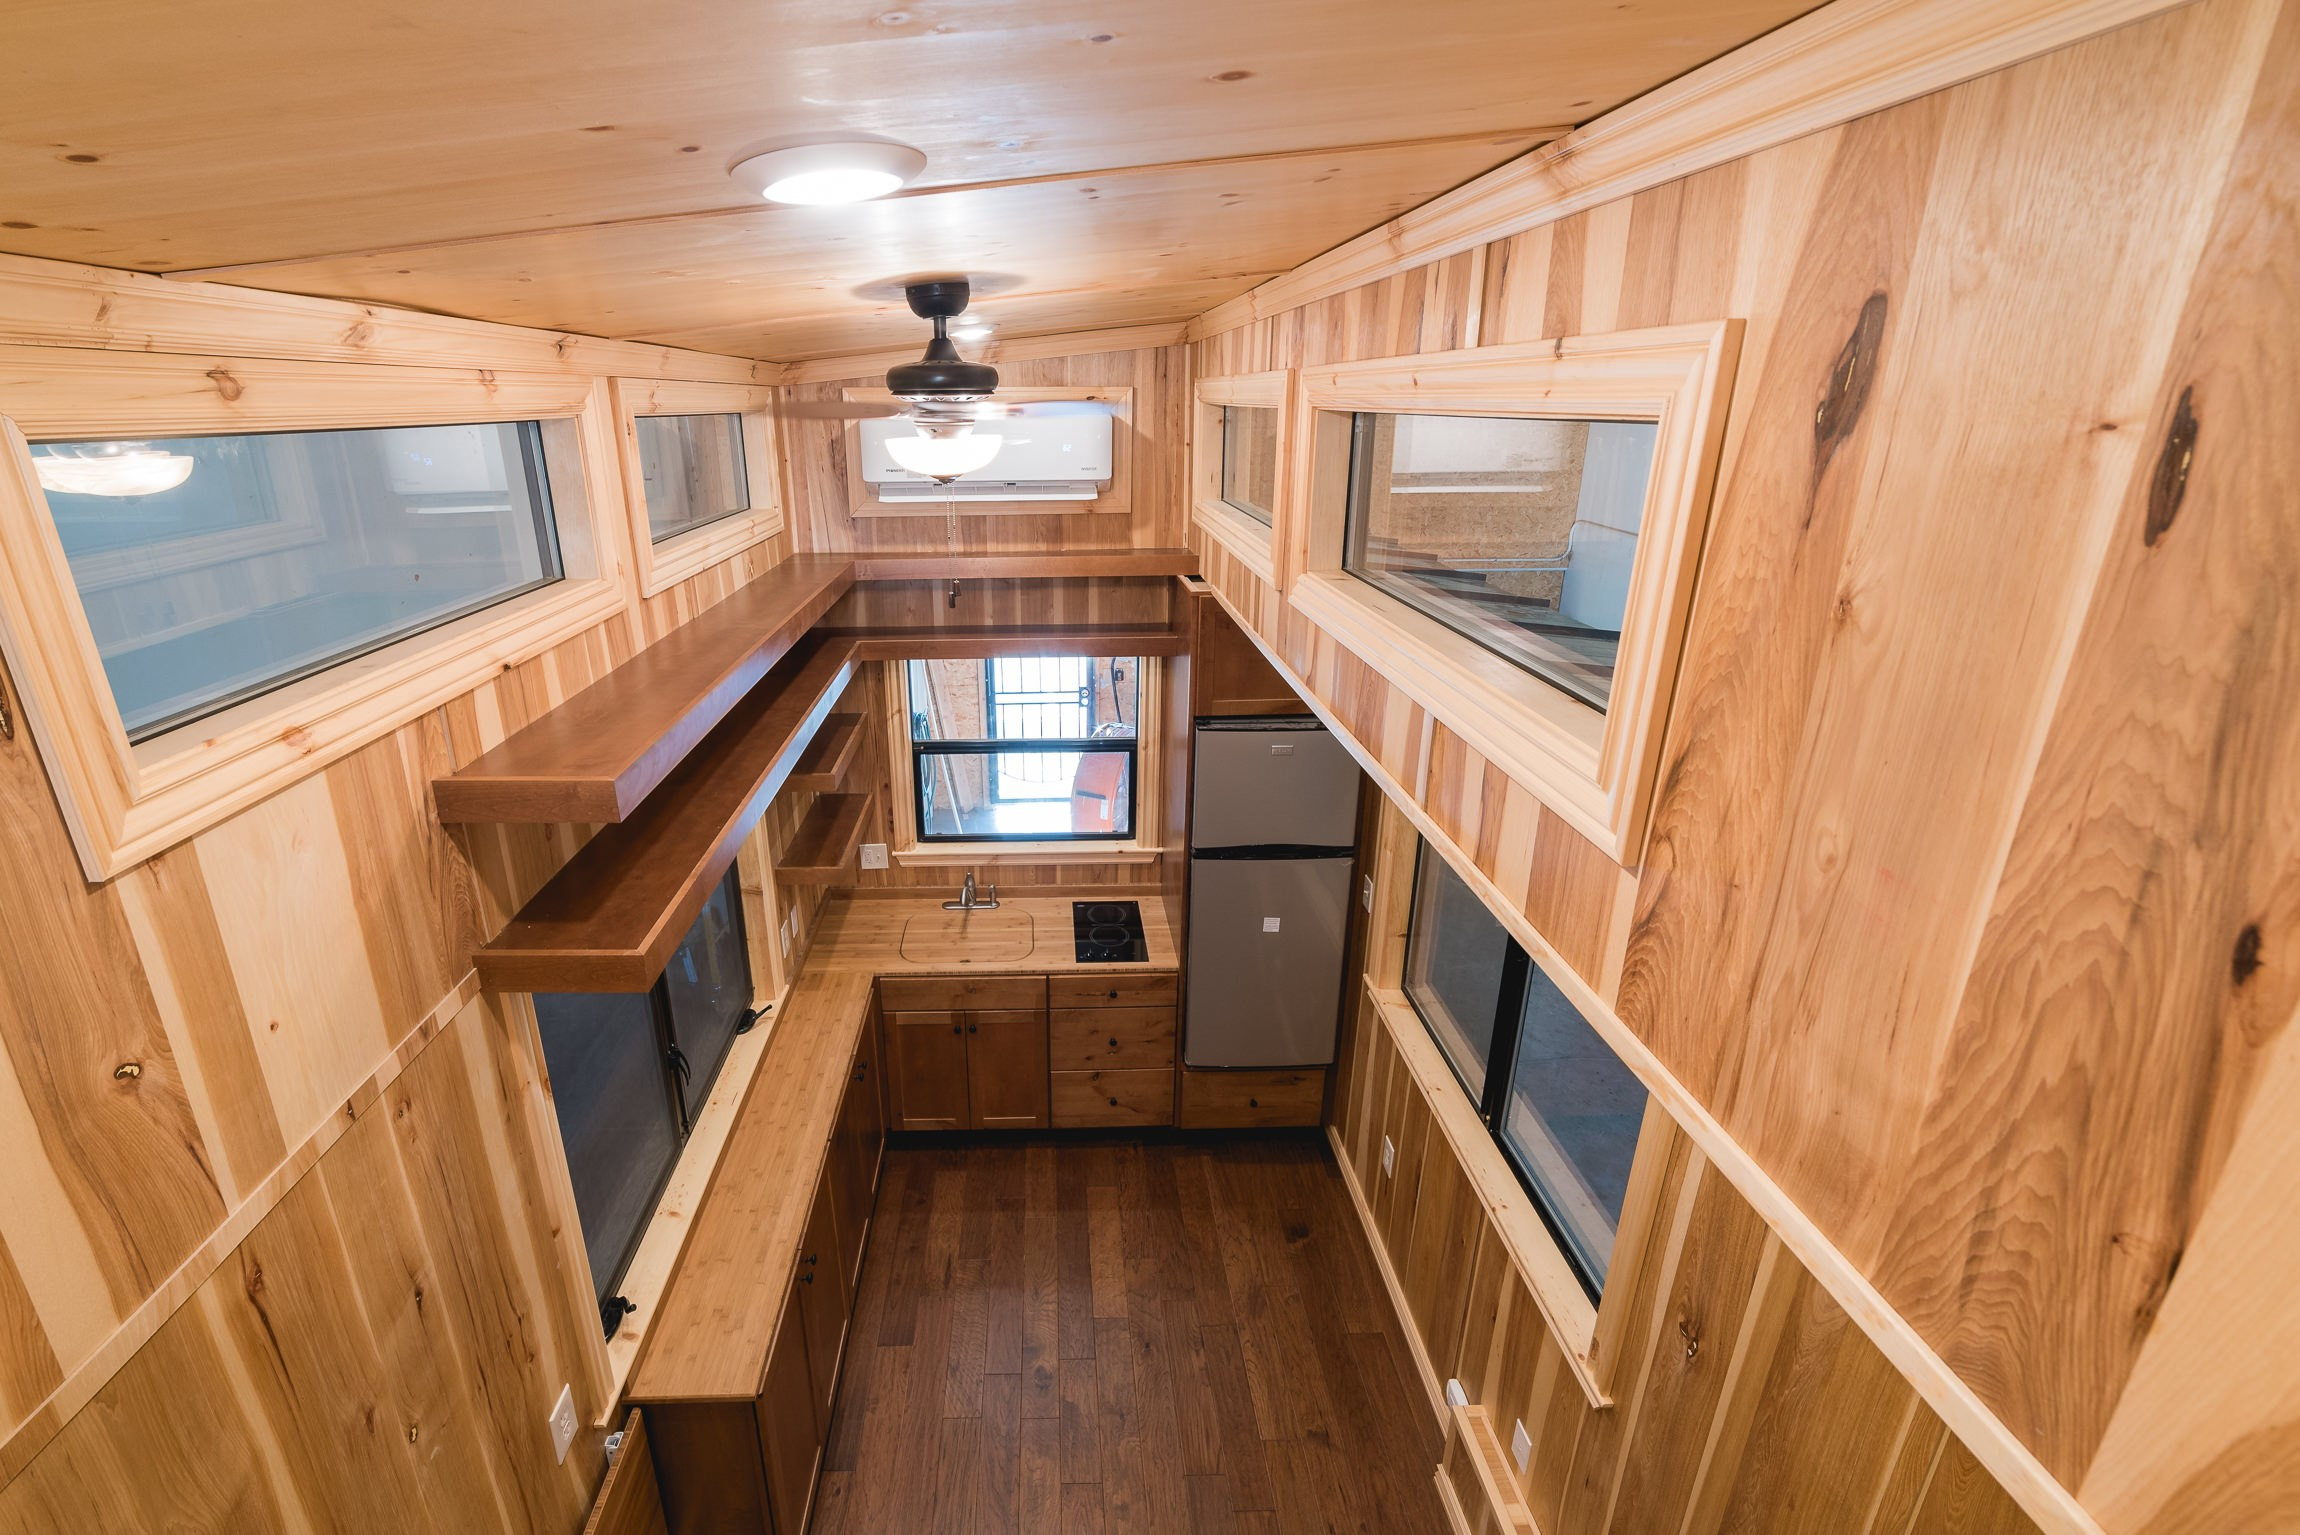 Vinyl windows for tiny home projects